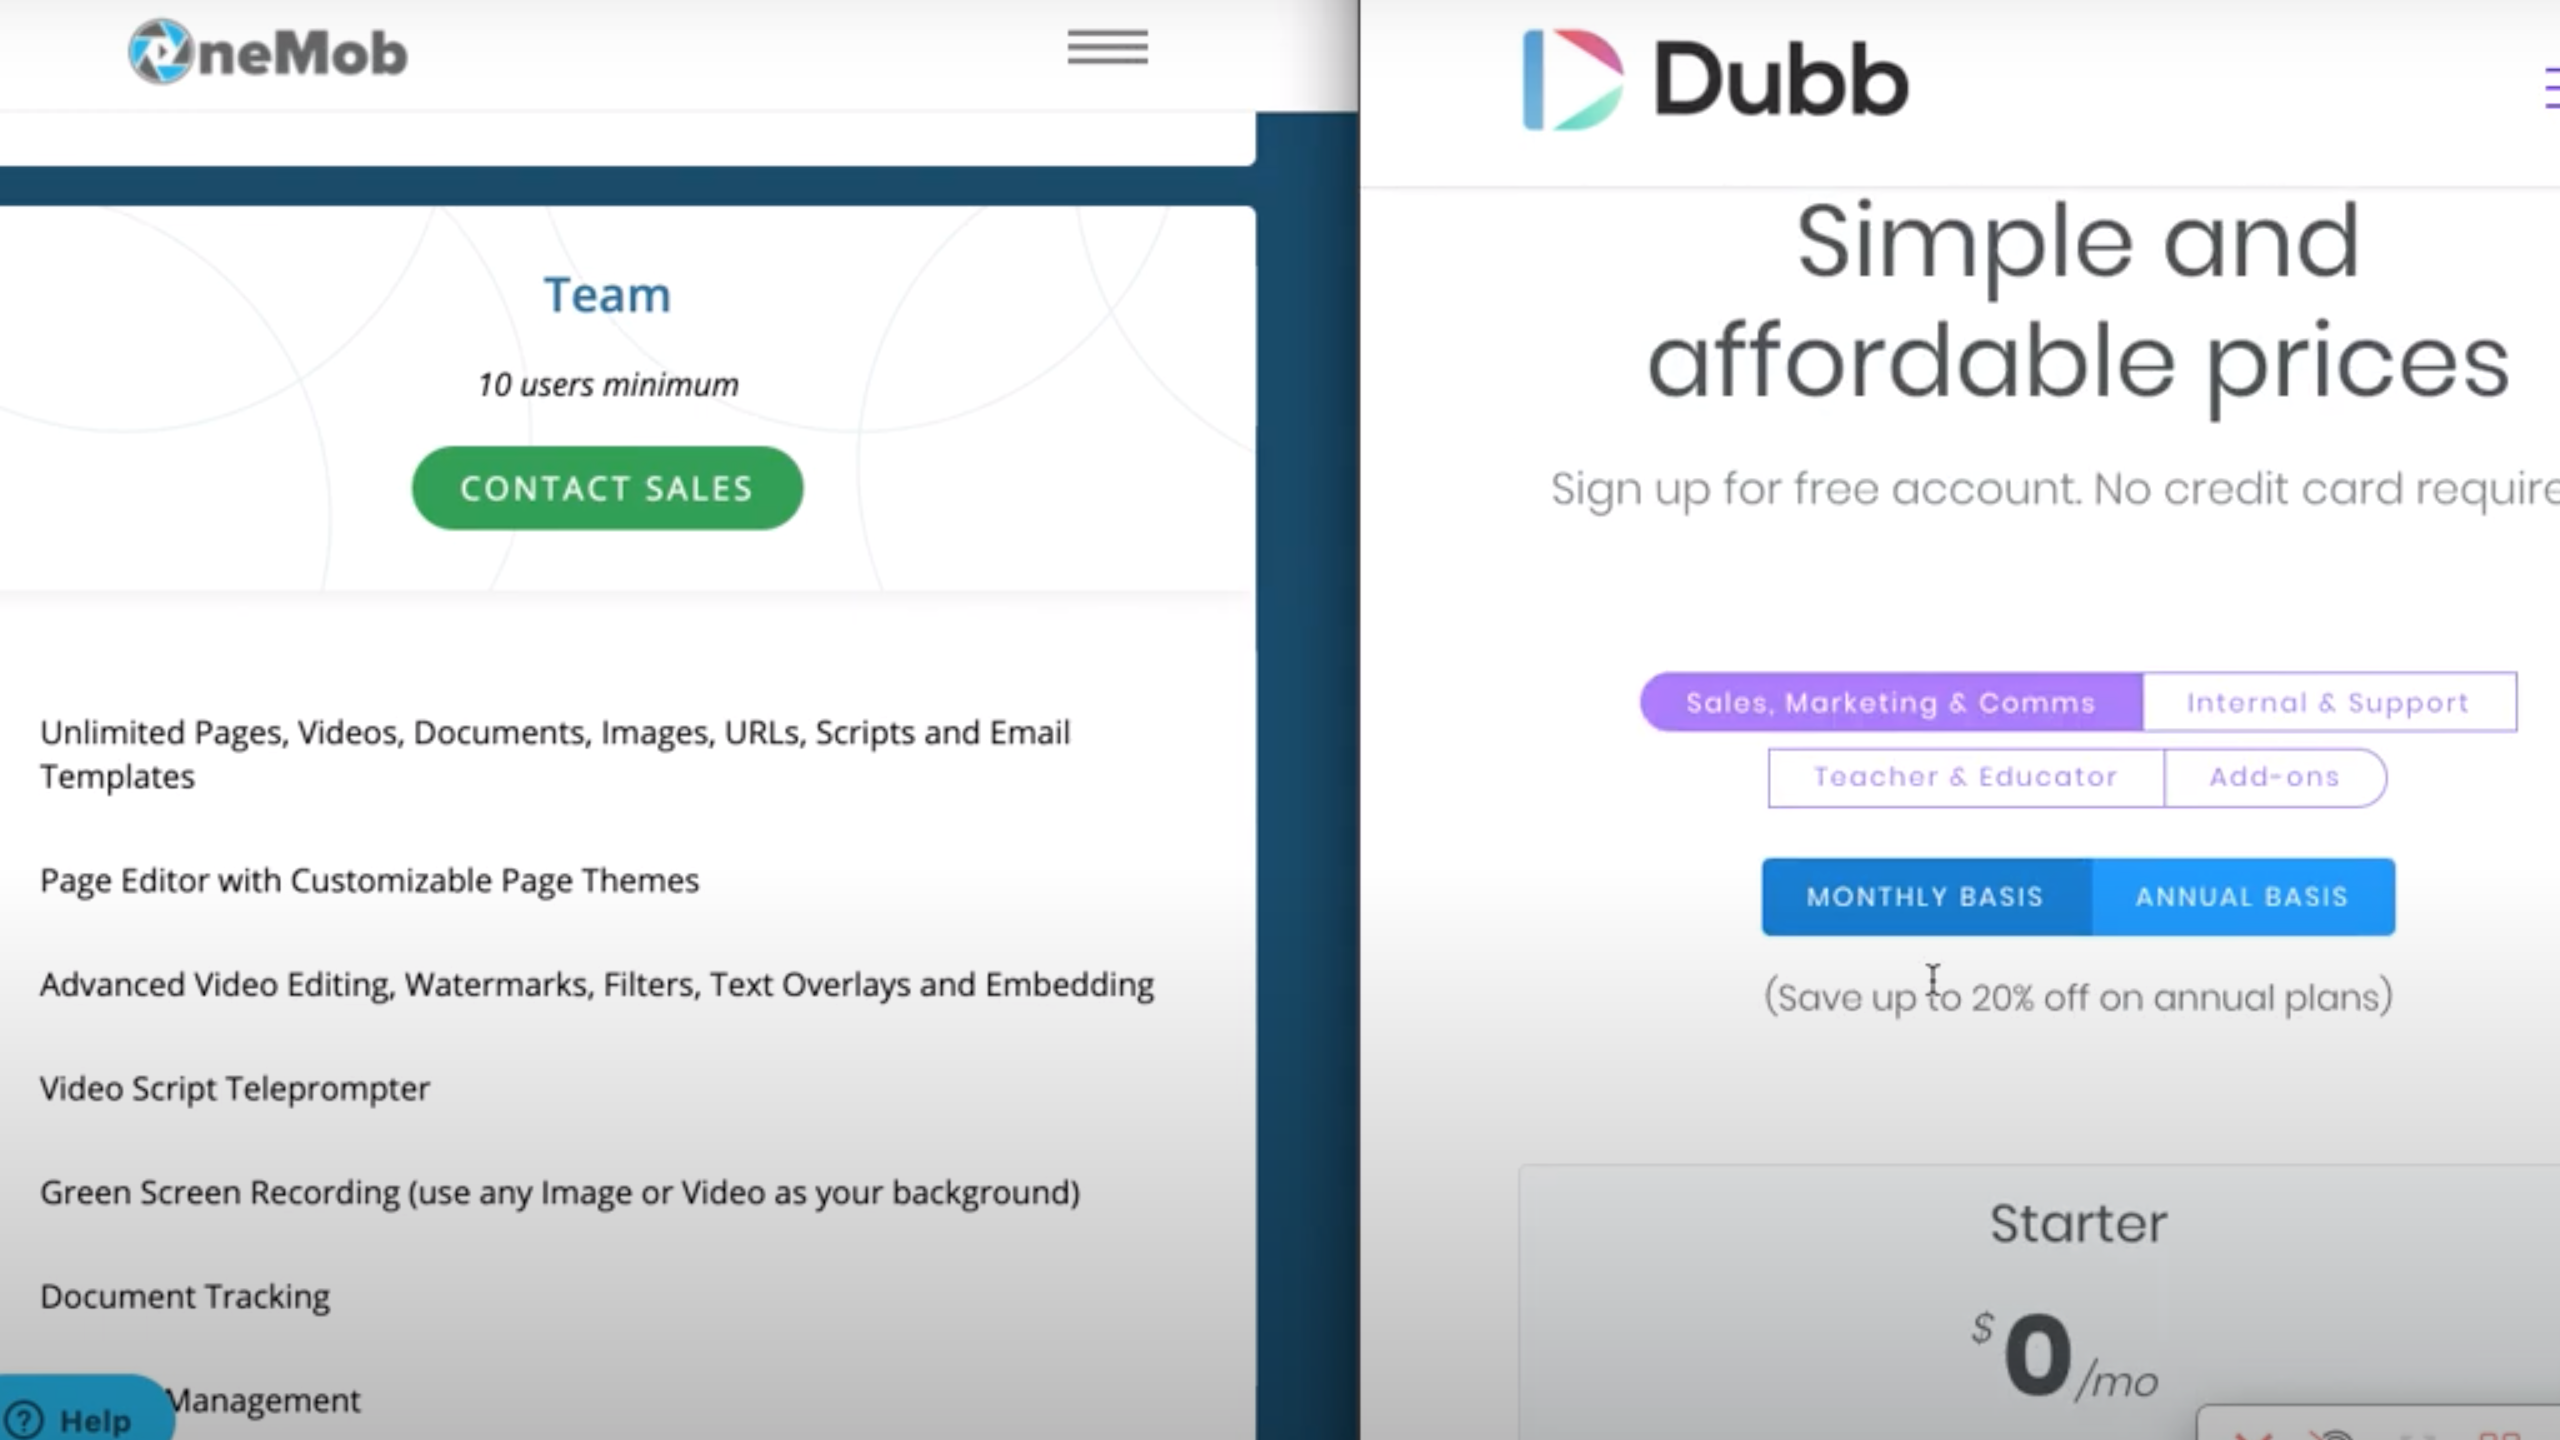 Onemob features vs Dubb features